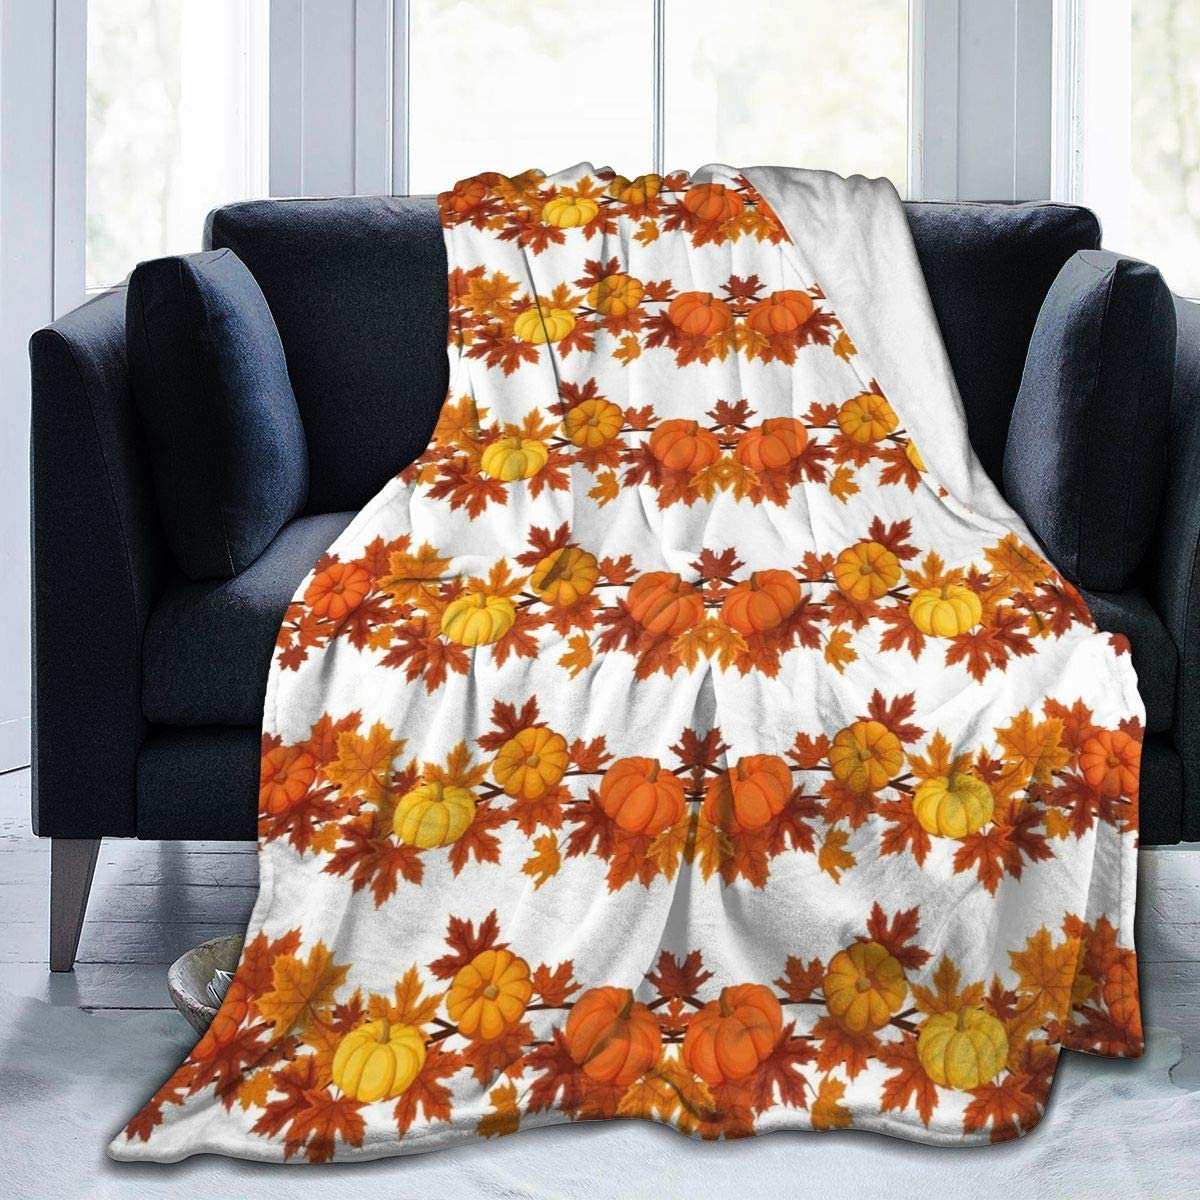 """MSGUIDE Thanksgiving Blanket Throw Fall Pumpkin Maple Leaves Air Conditioner Quilt for Sofa Bed Couch Living Room Bedroom Office Travel 50""""x40"""""""